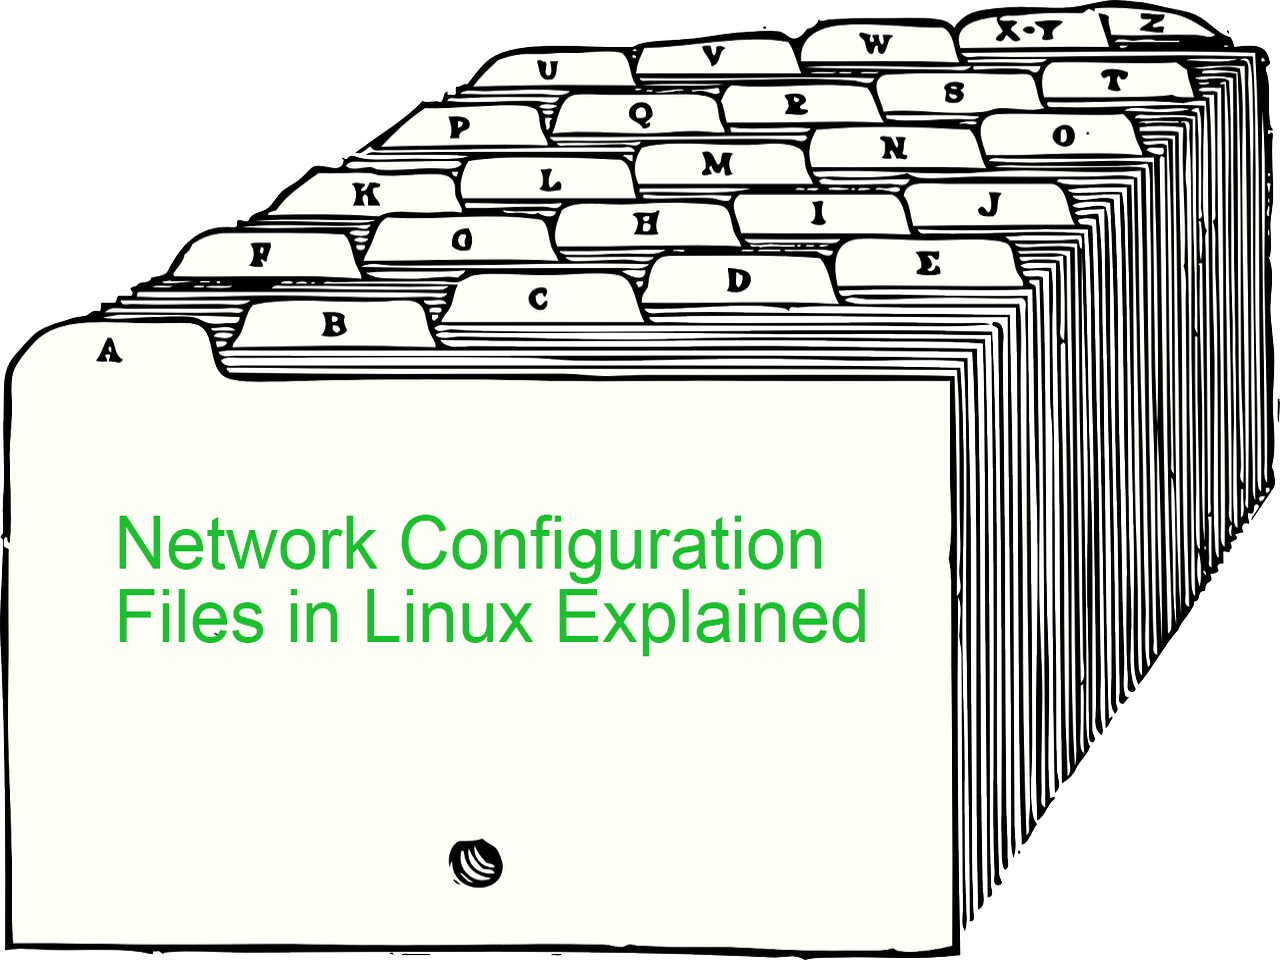 Network Configuration Files in Linux Explained